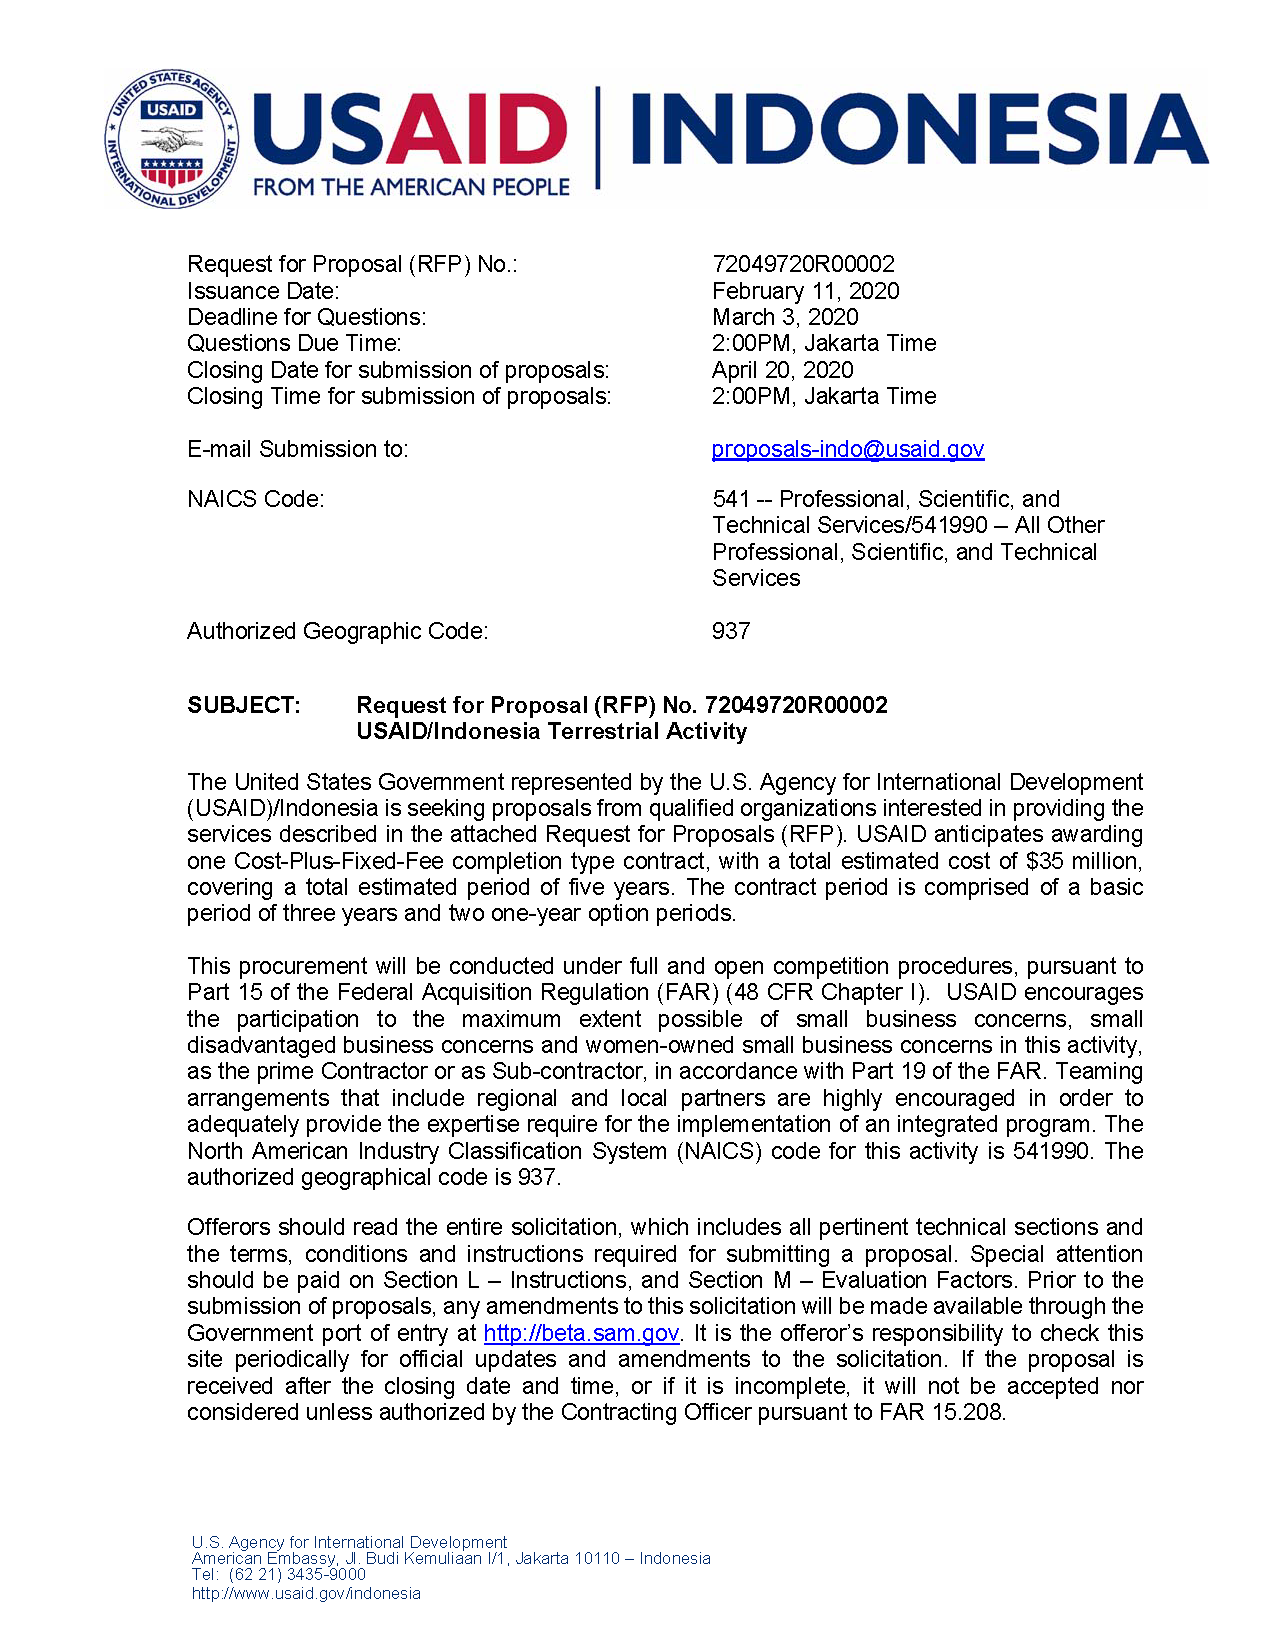 Amendment no. 01 RFP 72049720R00002 USAID/Indonesia Terrestrial Activity - Edit with Track Changes